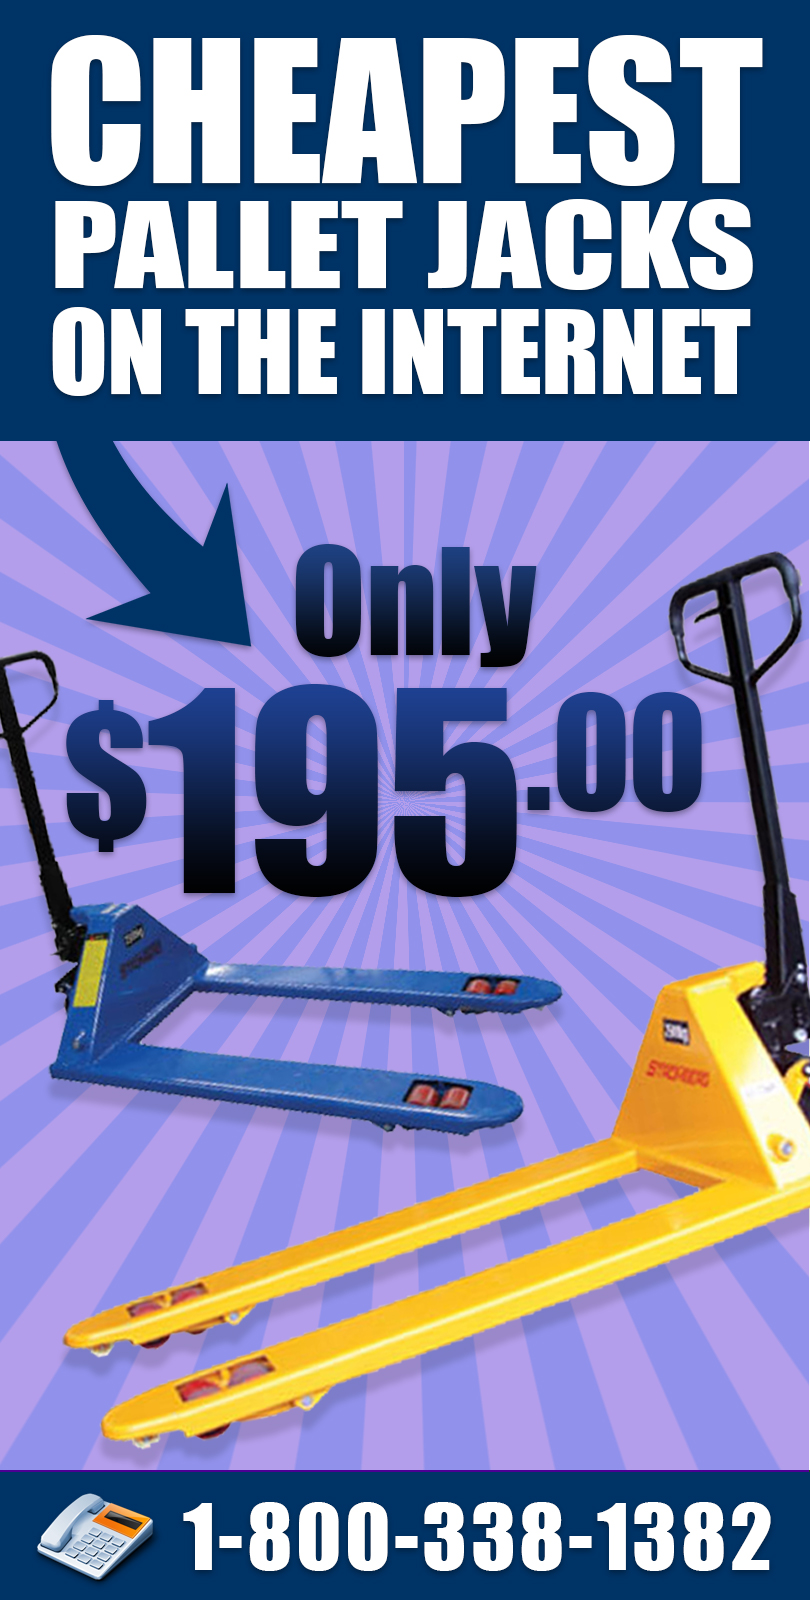 Your source for cheapest pallet jacks on the web!